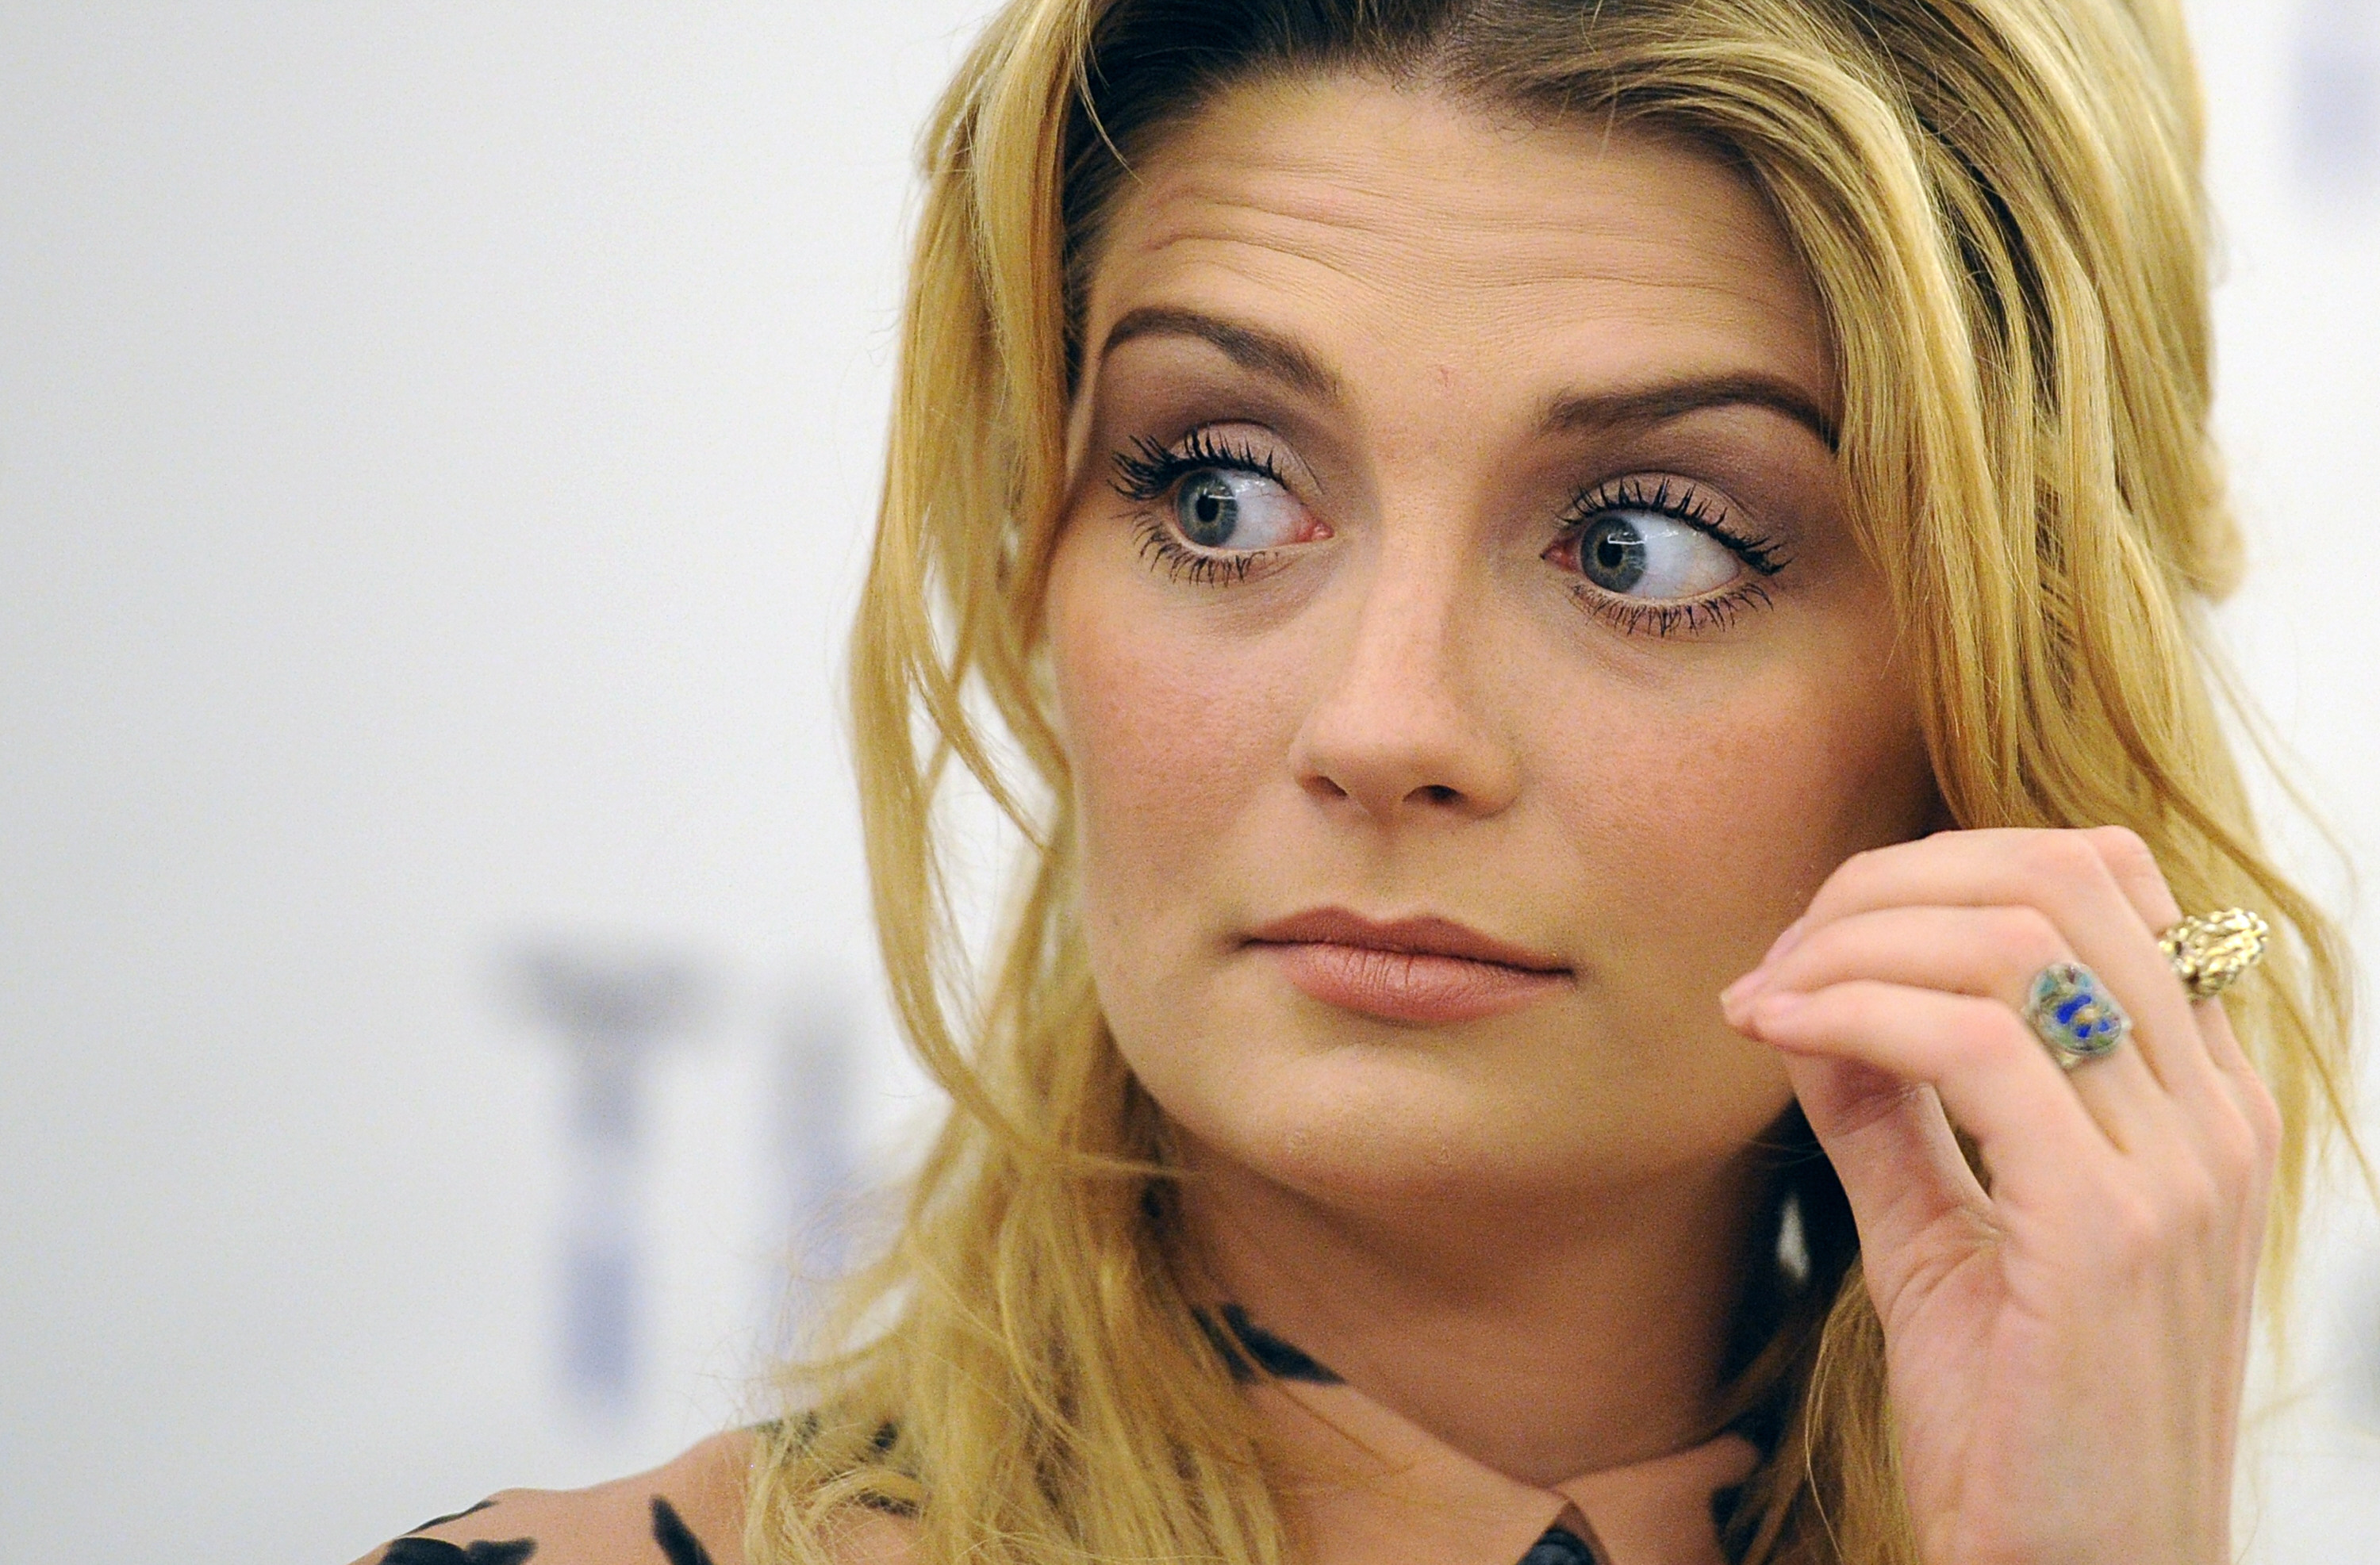 81319_Mischa_Barton_You_and_I_Photocall_PressConference_J0001_021_122_36lo.jpg